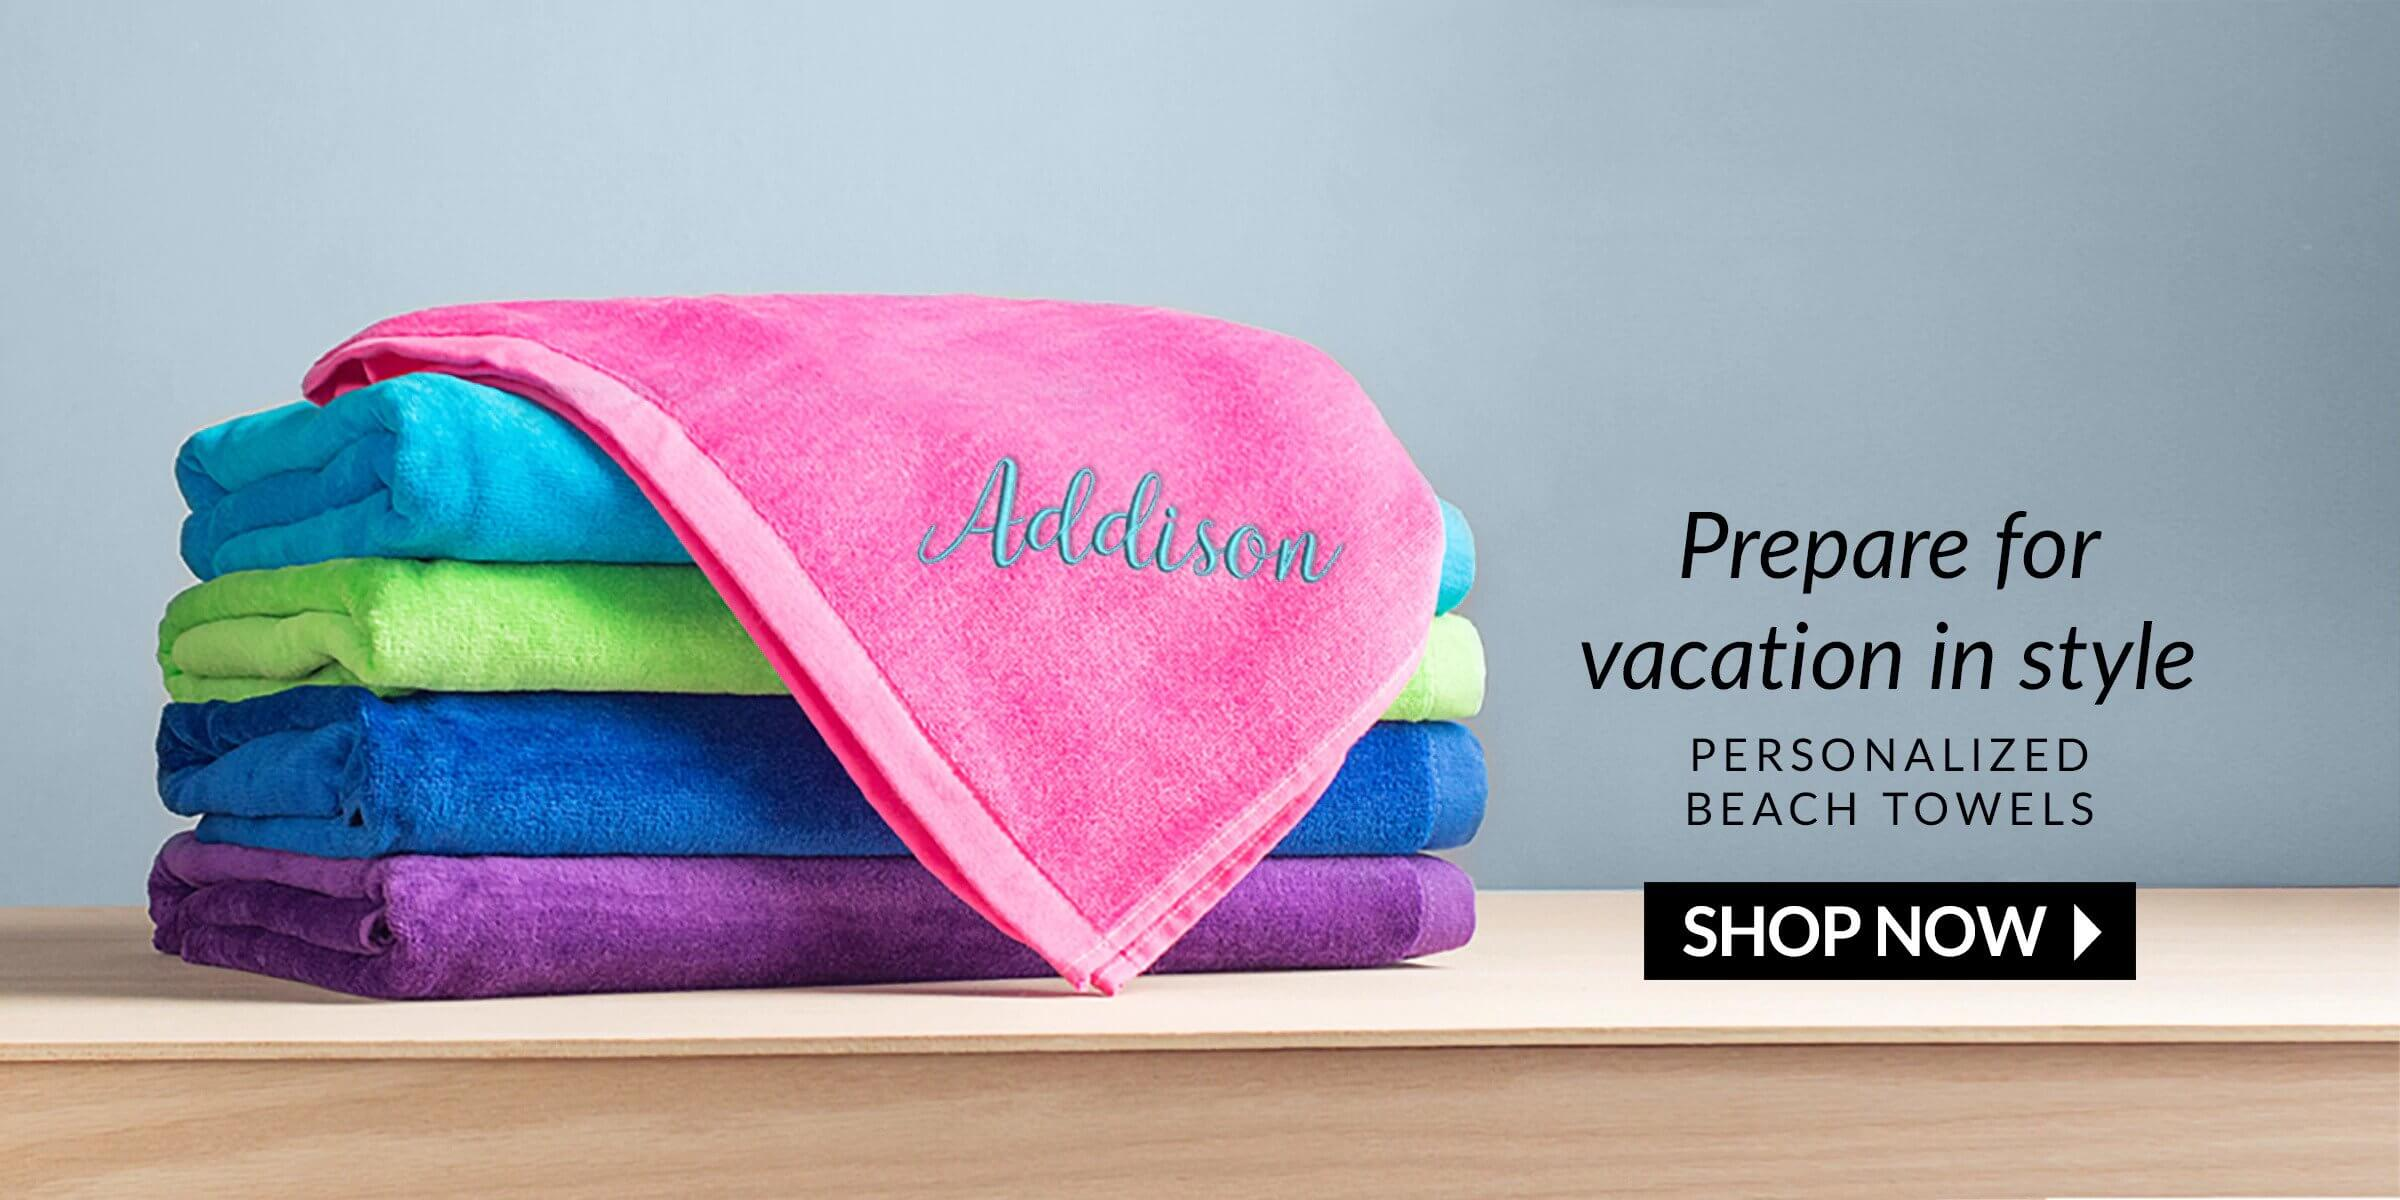 personalized beach towels banner